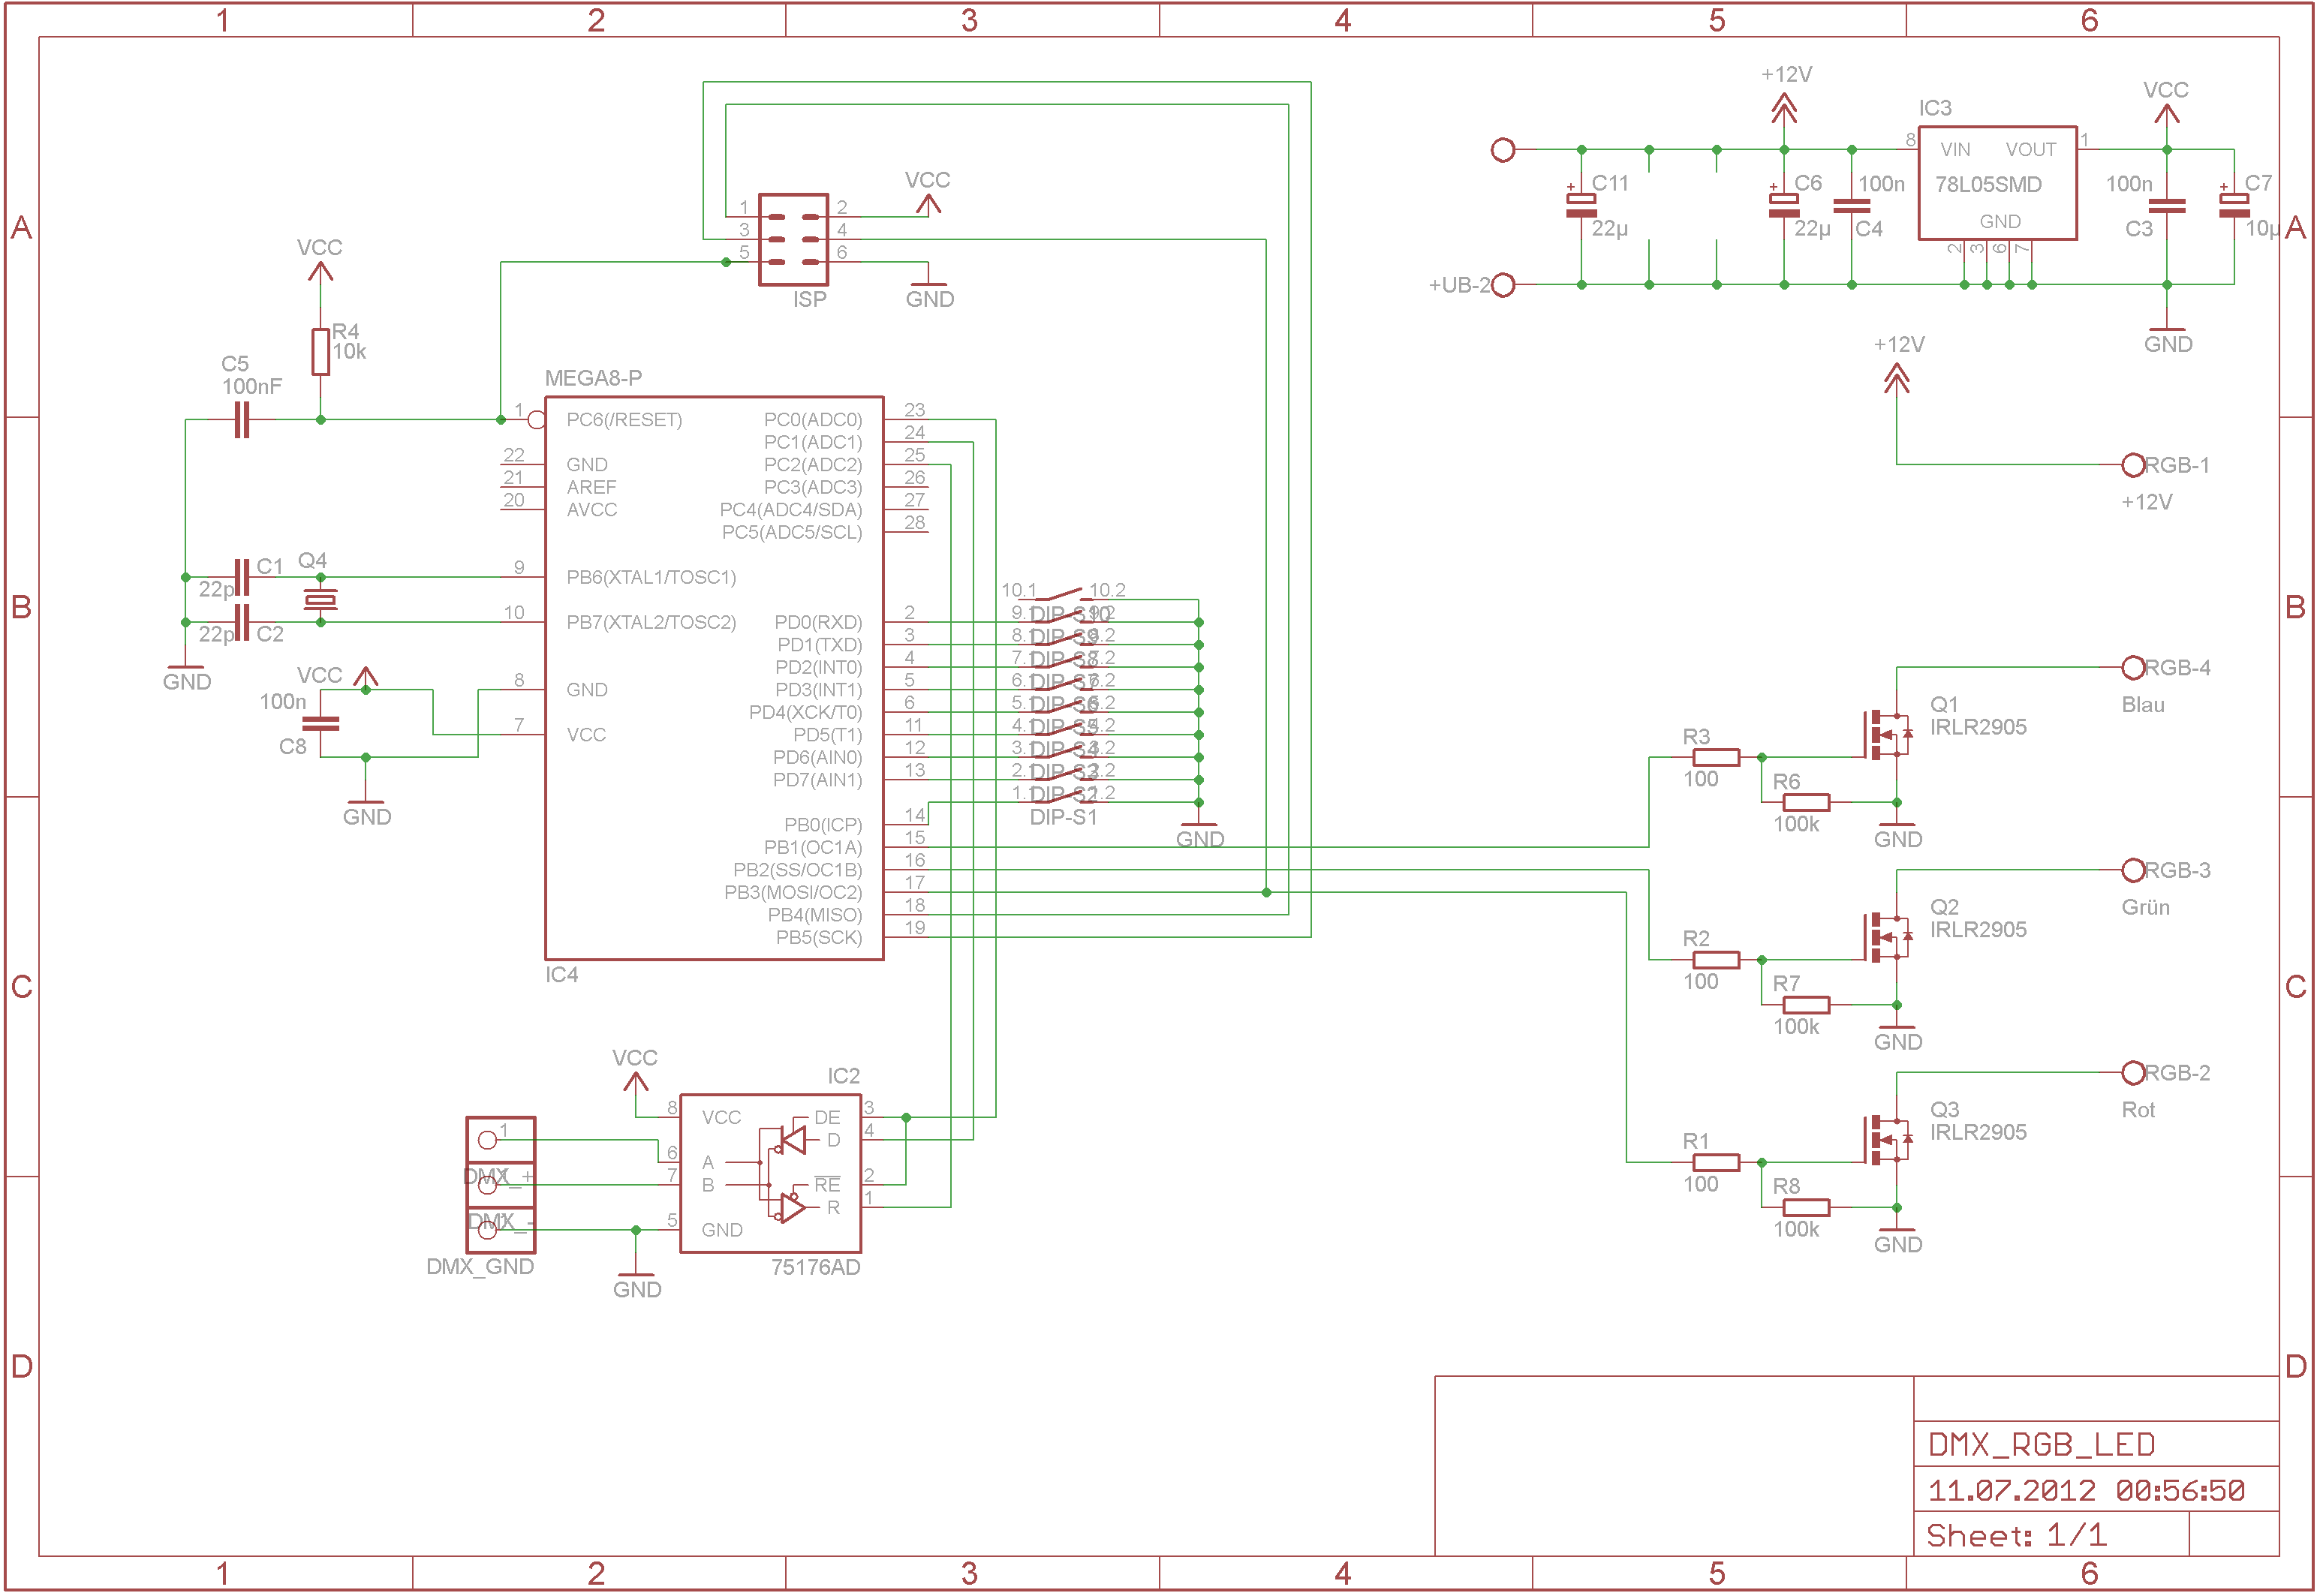 Led Dmx Wiring Diagram Not Lossing 5 Pin Steuerbaren Rgb Par Oder Pinnspot Selber Bauen 3 A Wire